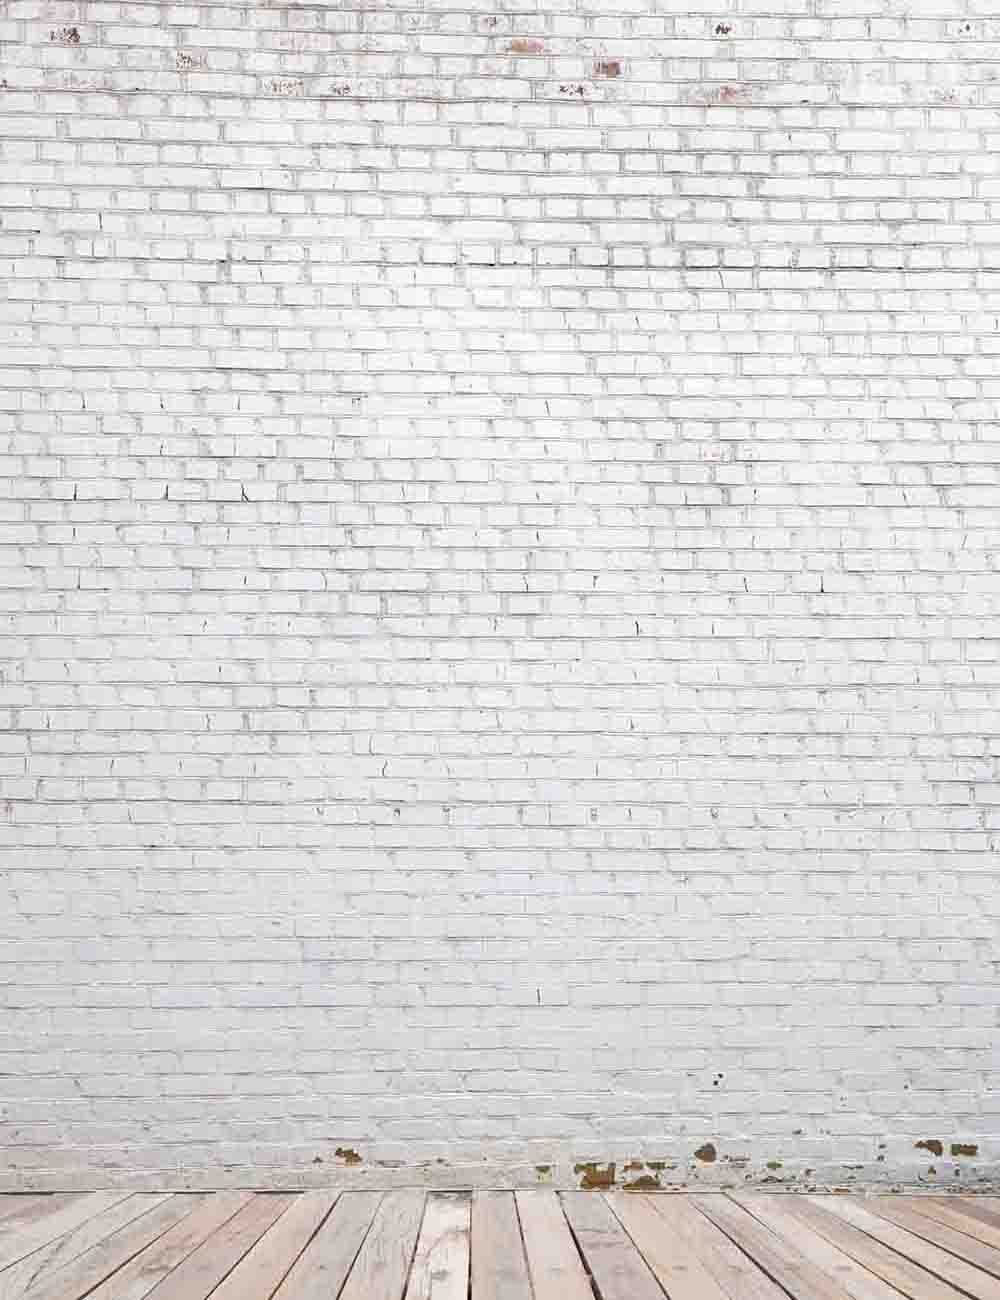 Retro Milk White Brick Wall With Wood Floor Photography Backdrop